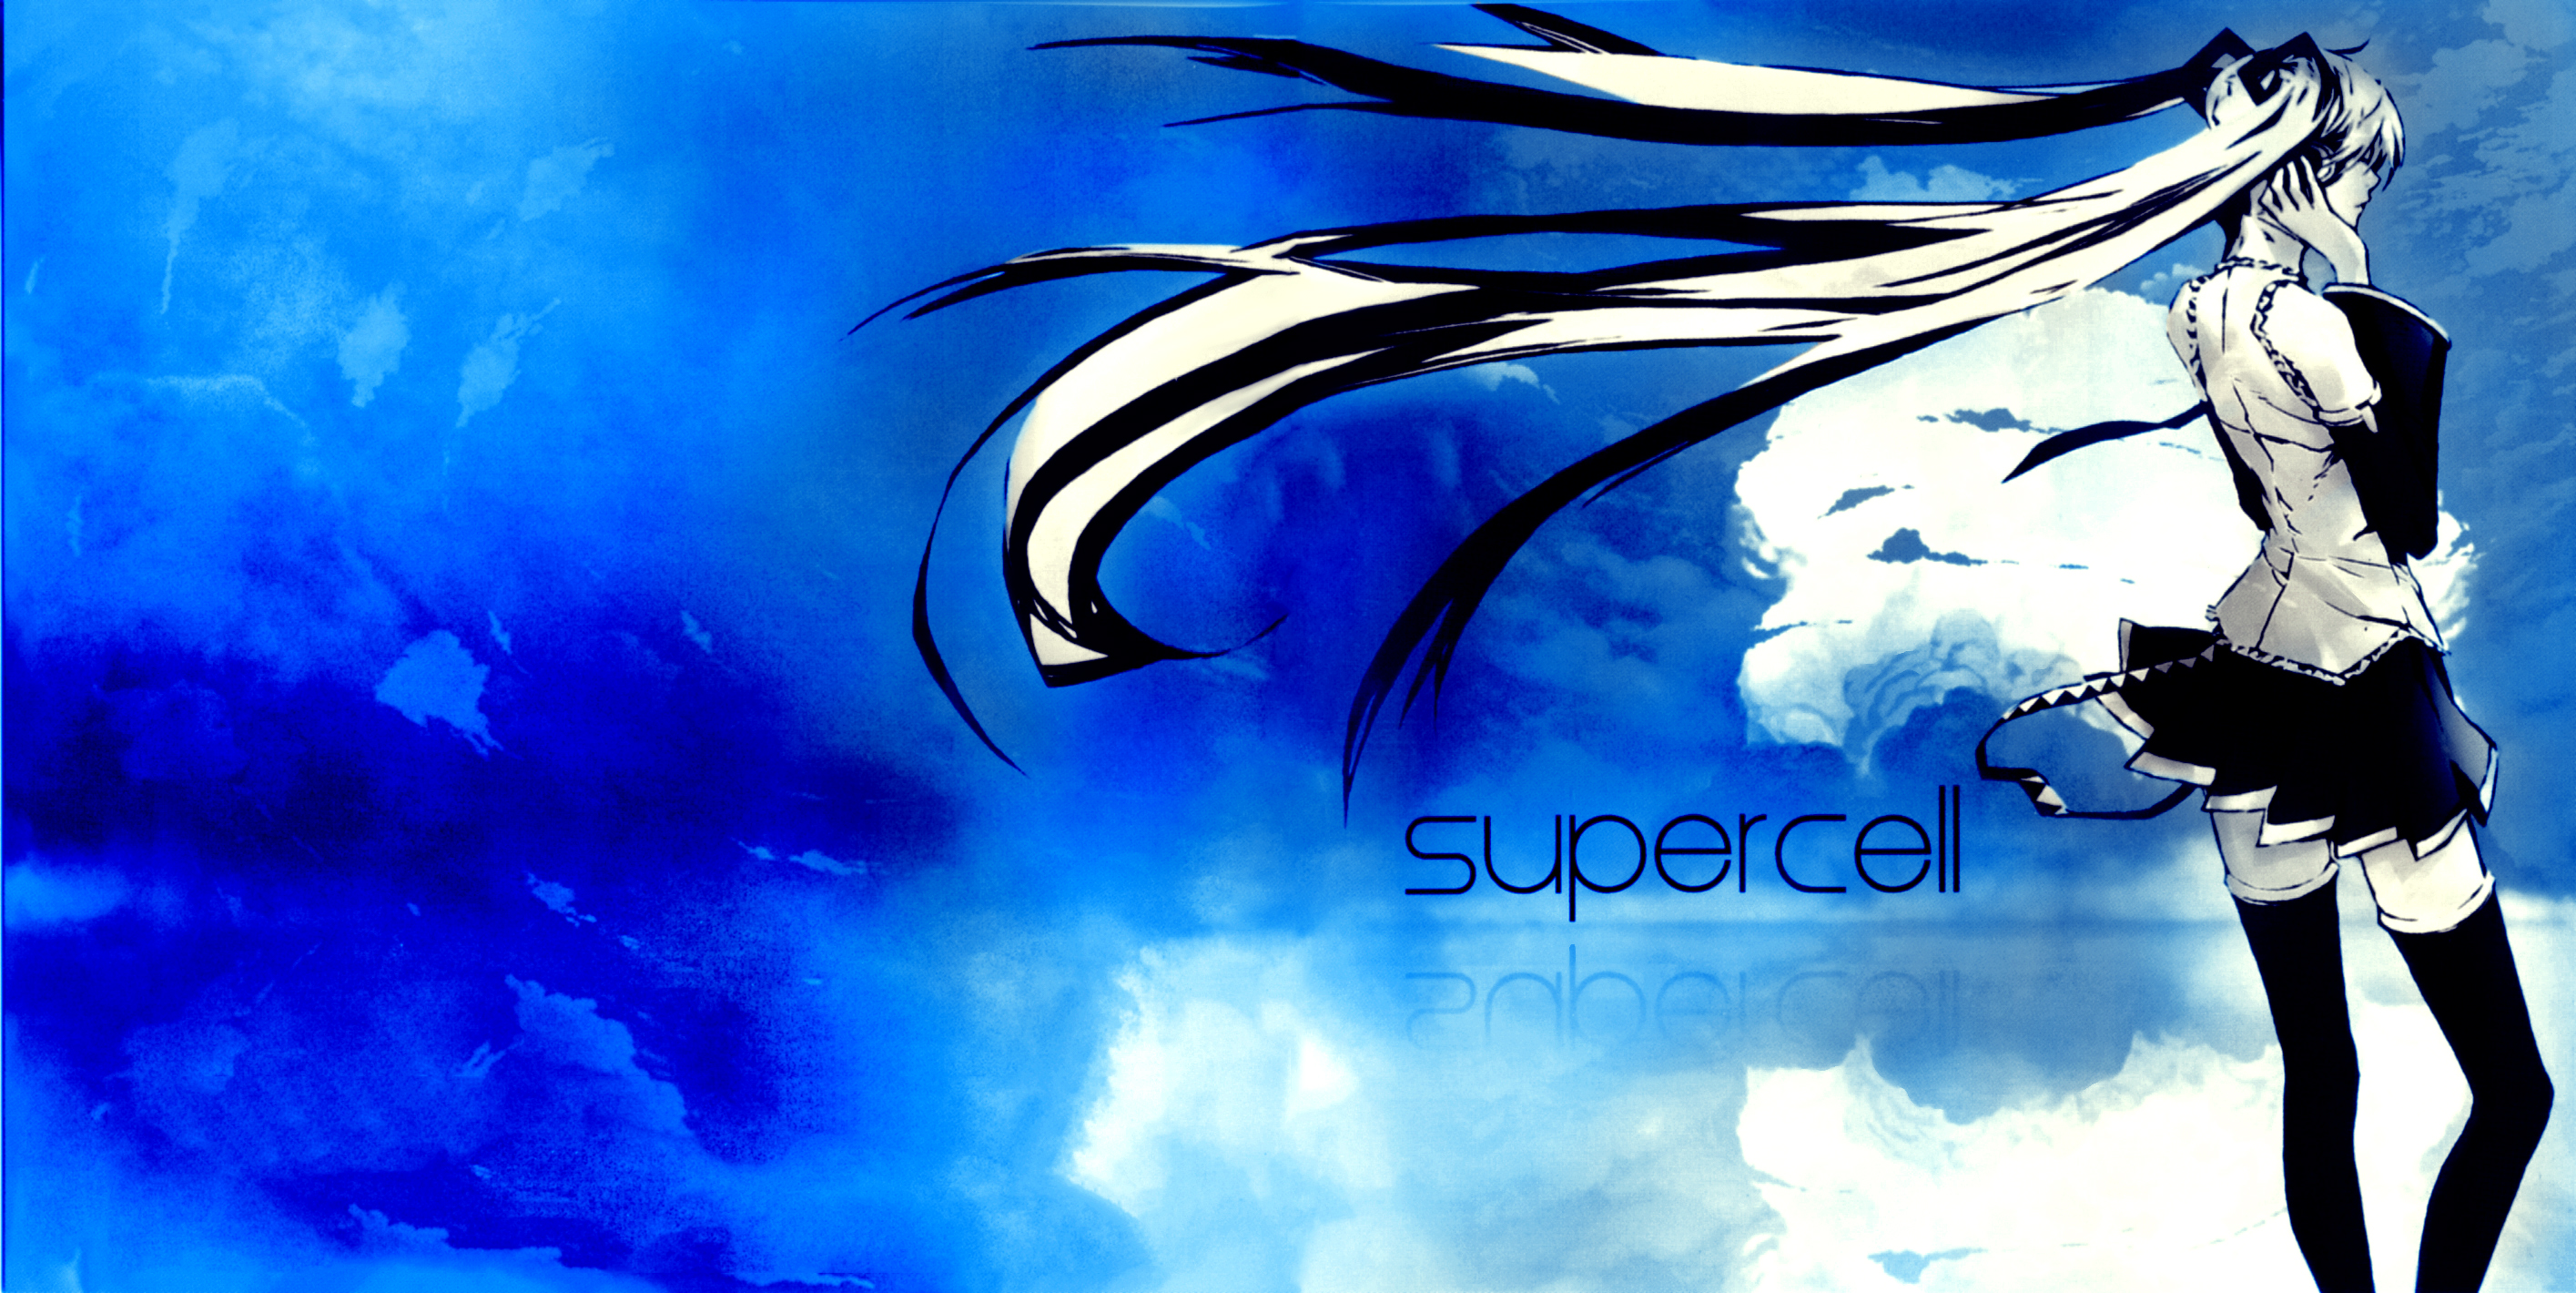 Supercell Wallpapers HDQ Supercell Images Collection for 2830x1420